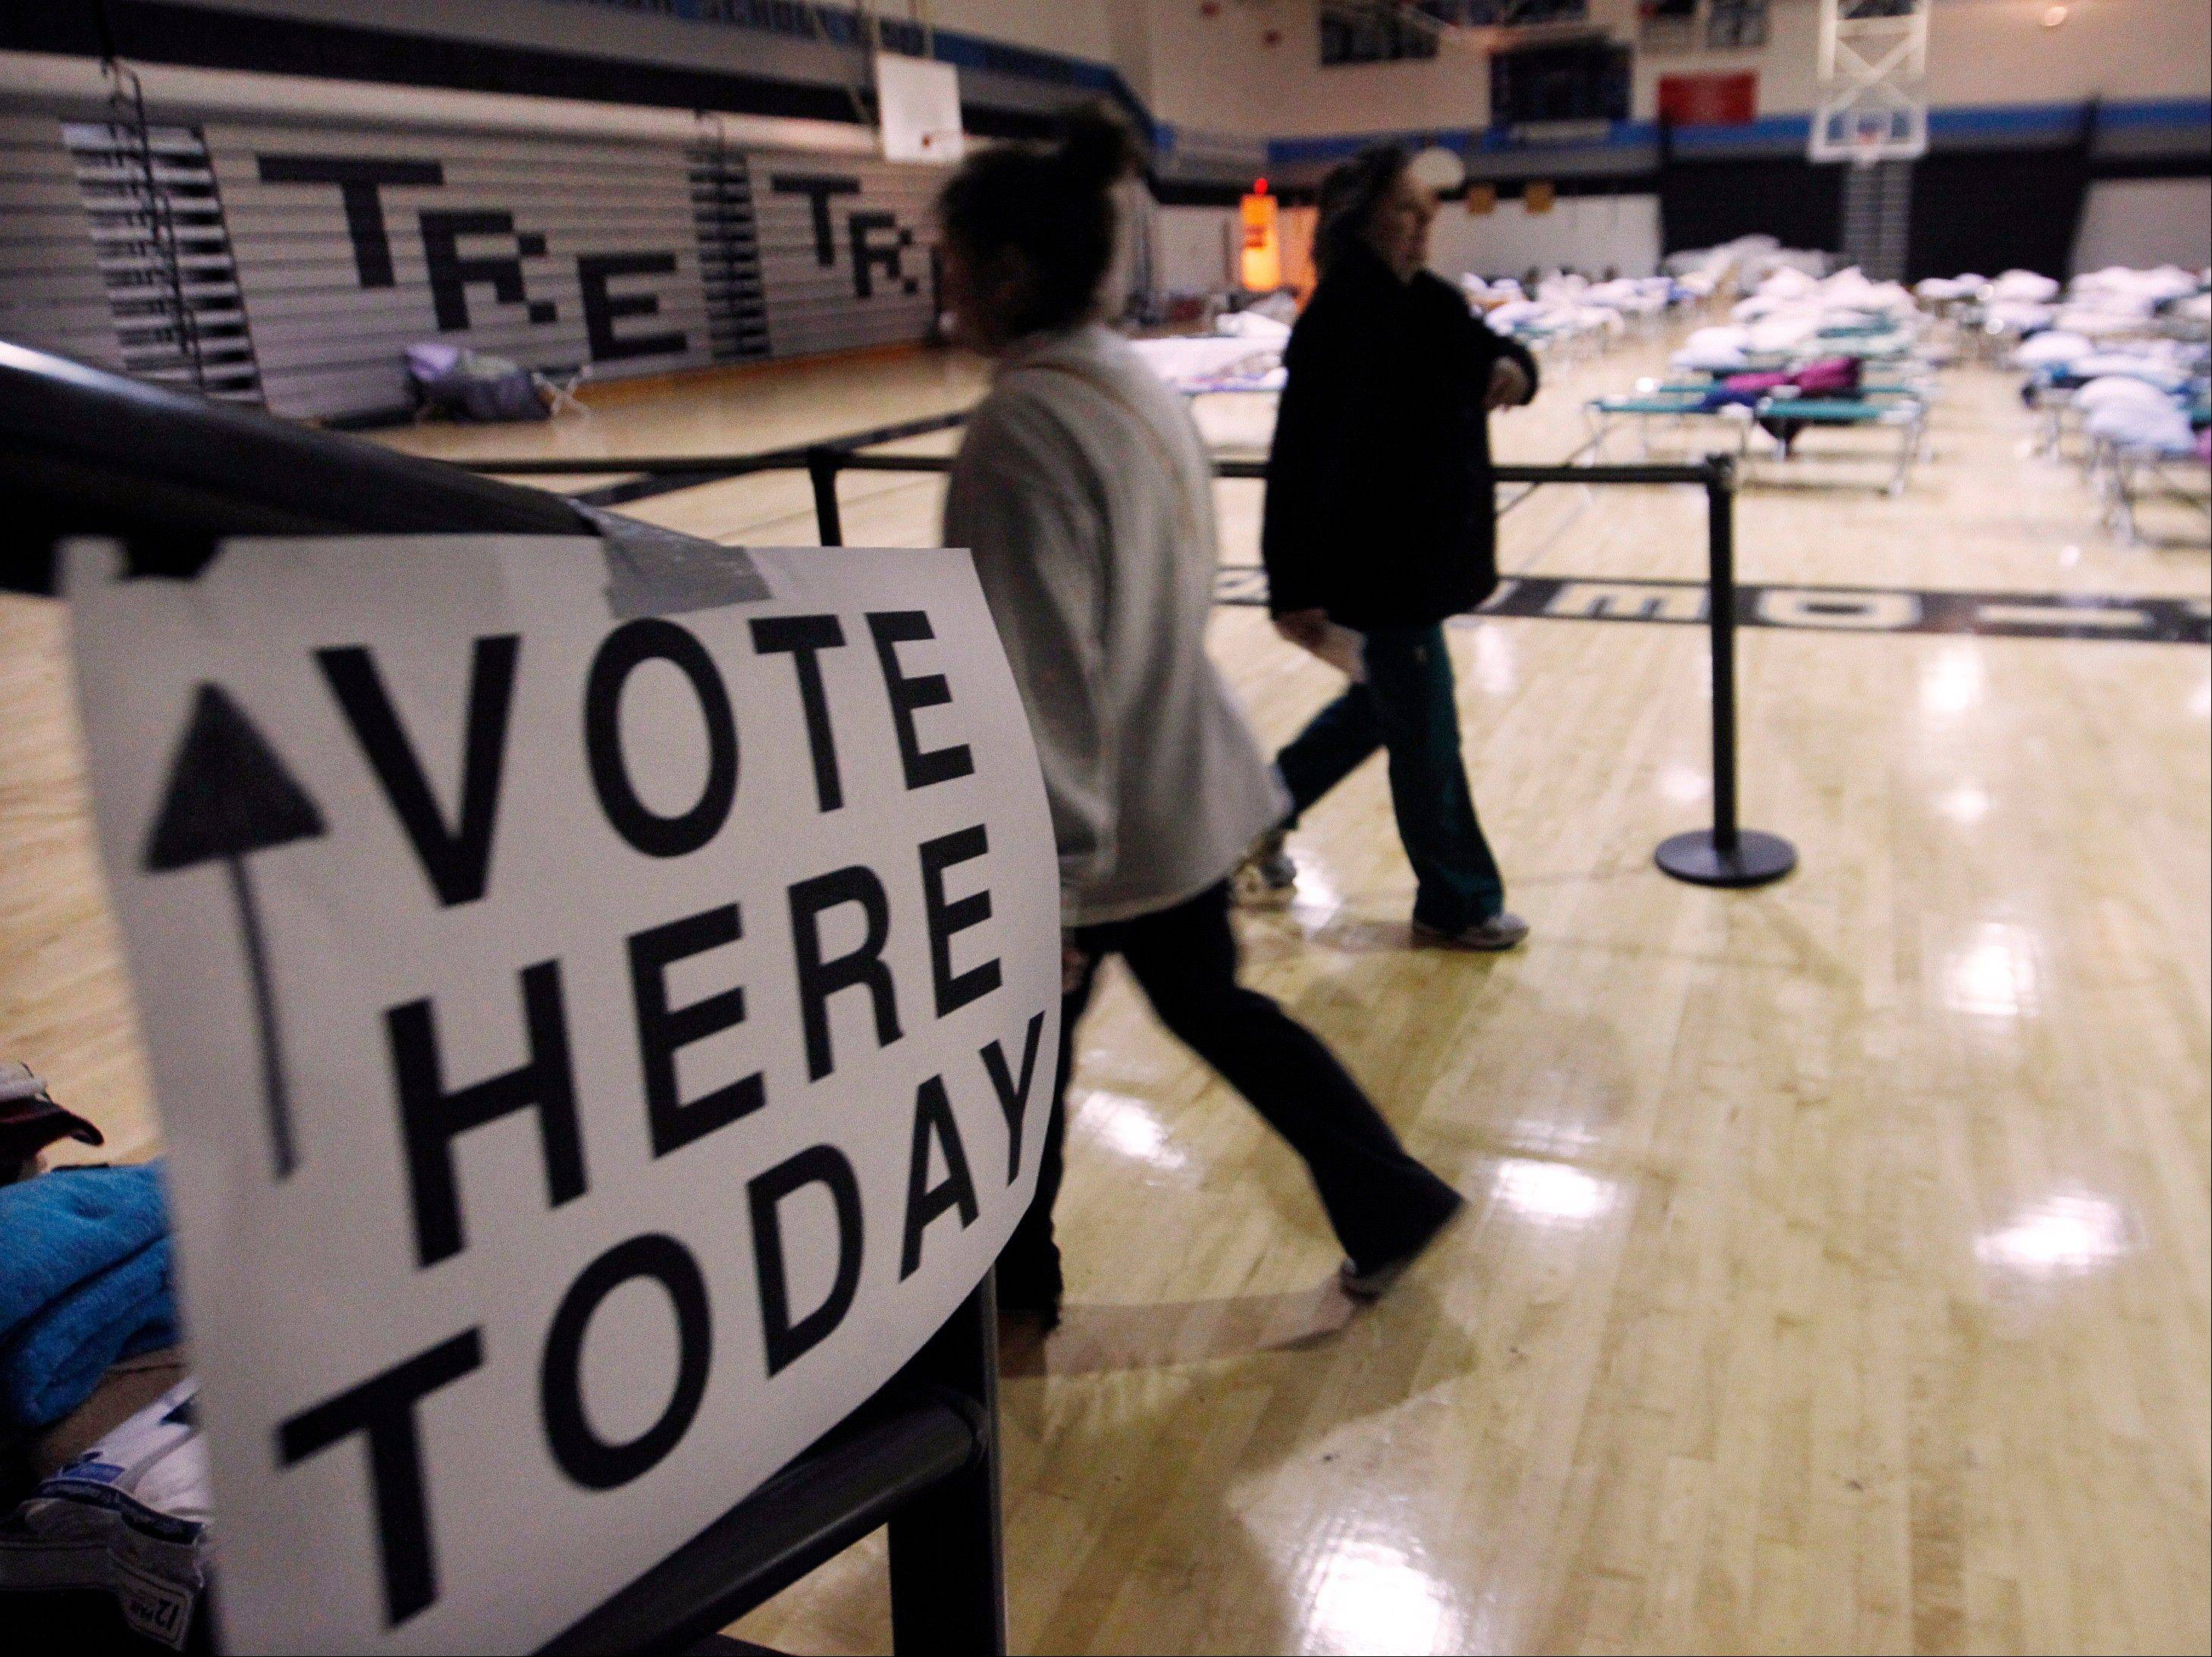 People walk through a makeshift shelter in a gymnasium at Toms River East High School as they arrive to vote Tuesday, Nov. 6, 2012, in Toms River, N.J. Voter turnout was heavy in several storm-ravaged Jersey Shore towns, with many voters expressing relief and even elation at being able to vote at all, considering the devastation.